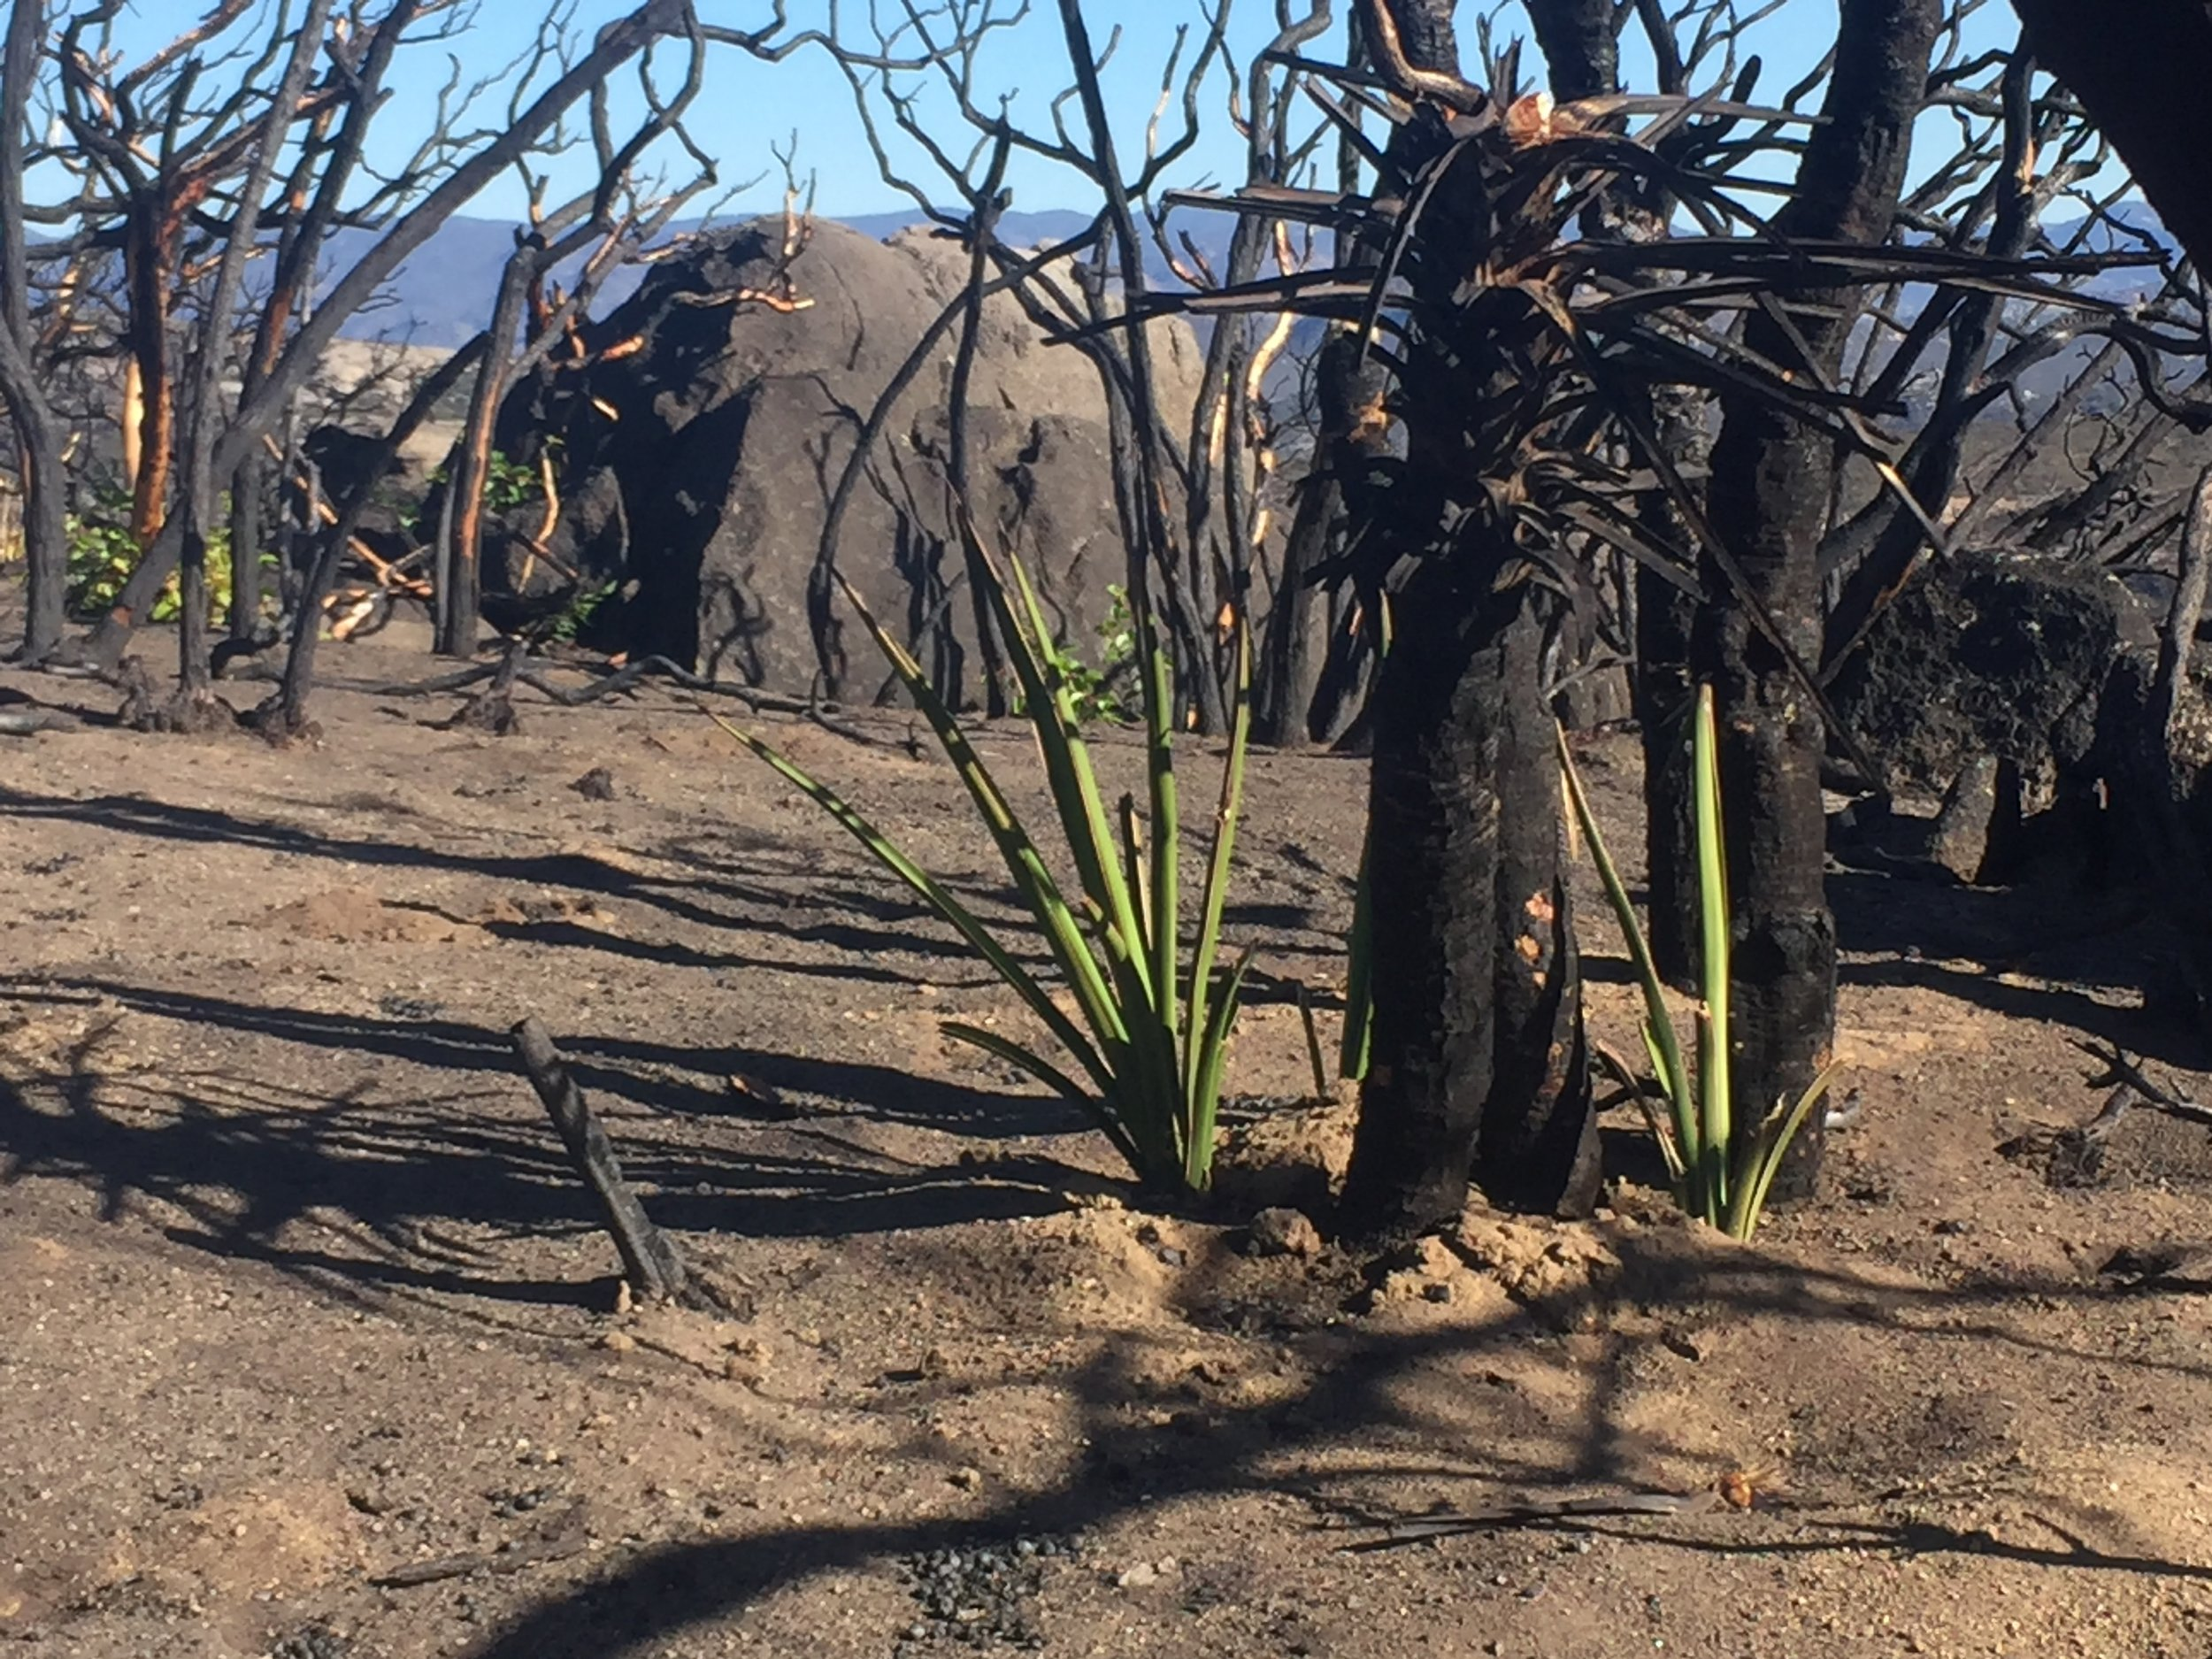 New shoots surround nearly every charred stalk in the Border Fire burn zone